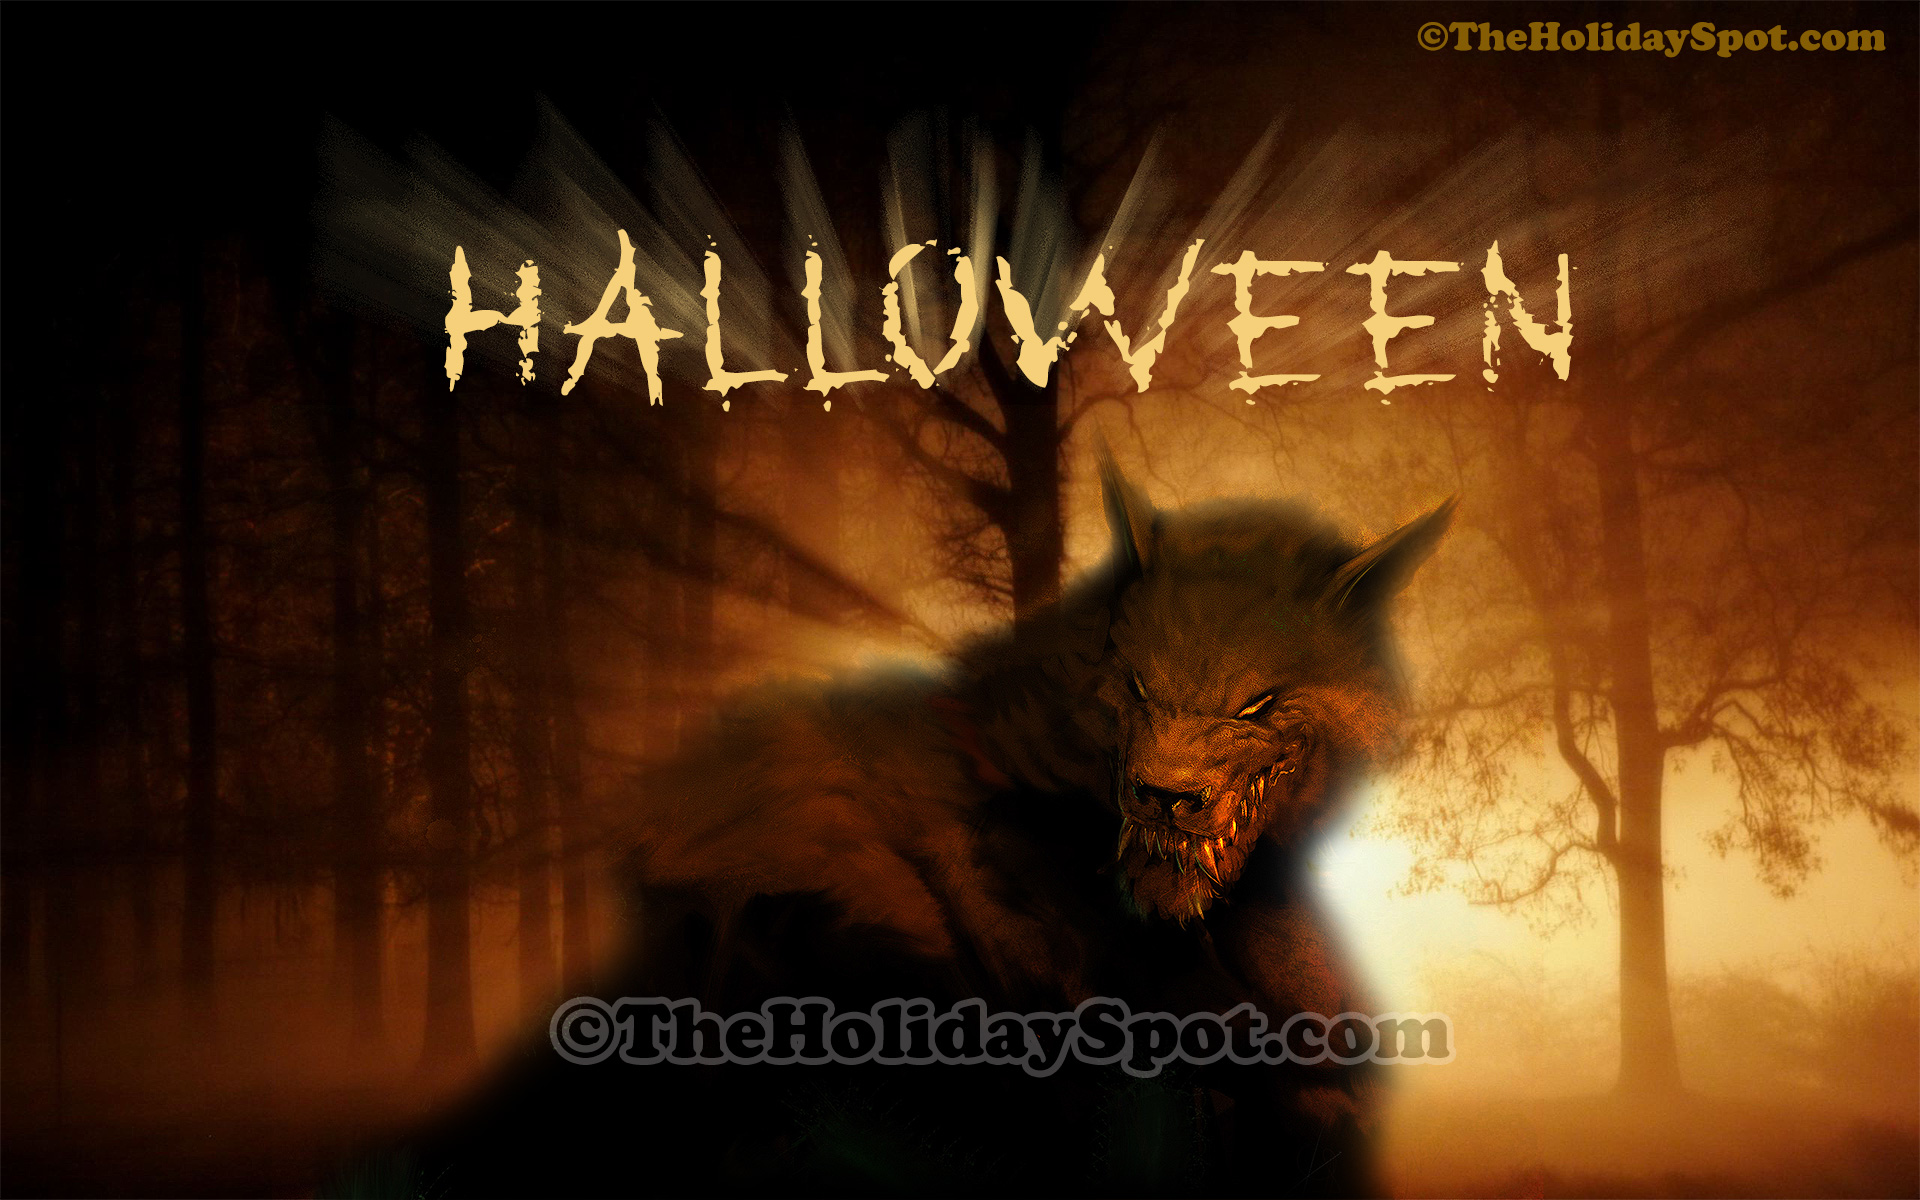 Free Fall Themed Desktop Wallpaper Halloween Wallpaper Hd Download Halloween Desktop